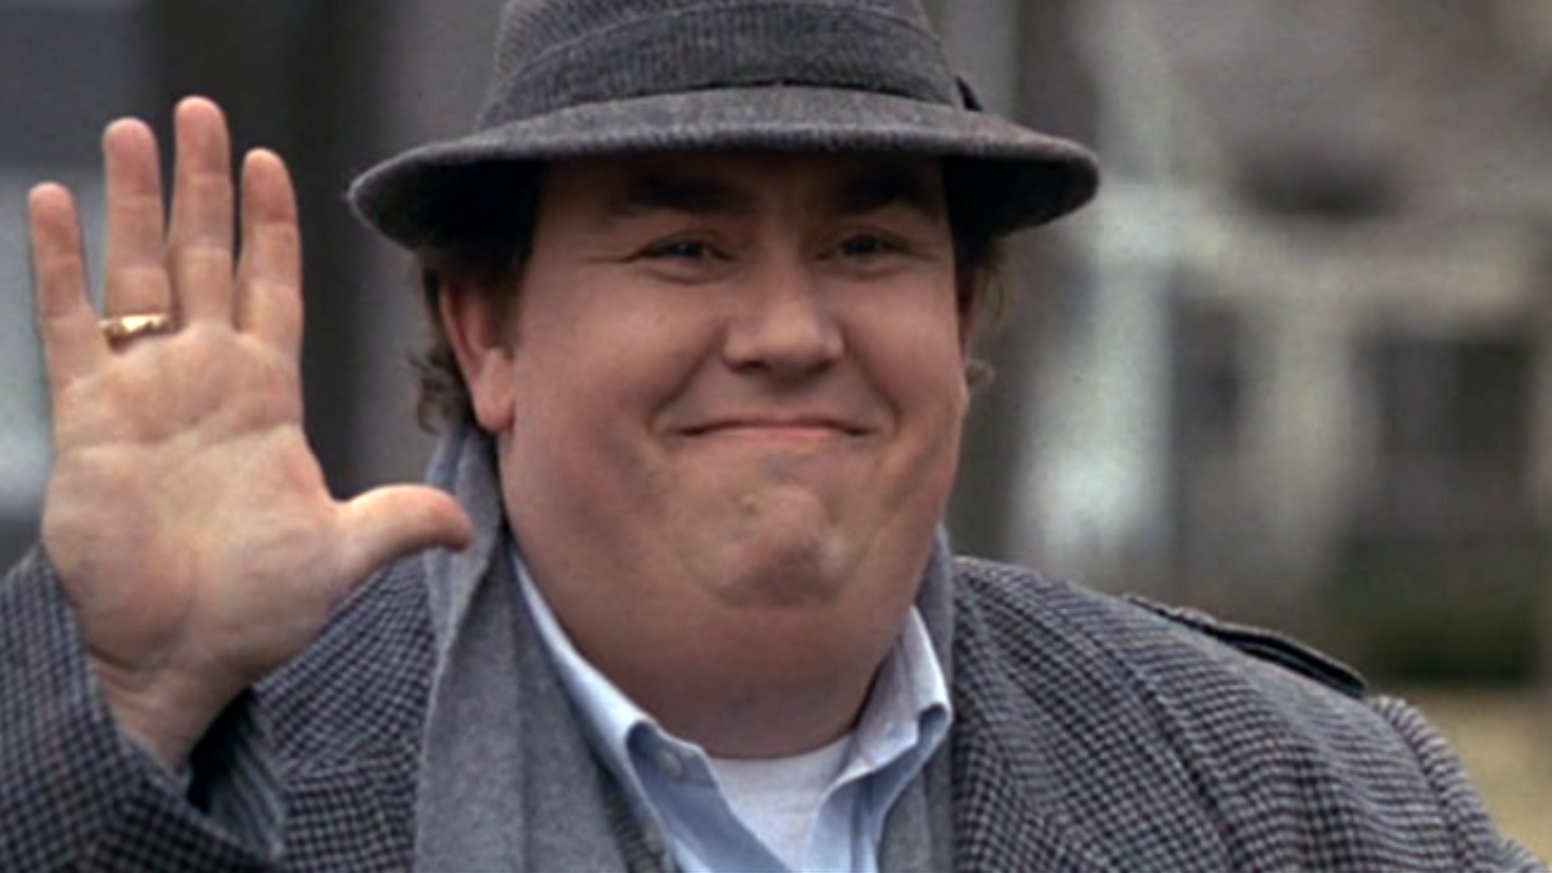 'Deadpool' Star Ryan Reynolds Shares Touching John Candy Tribute